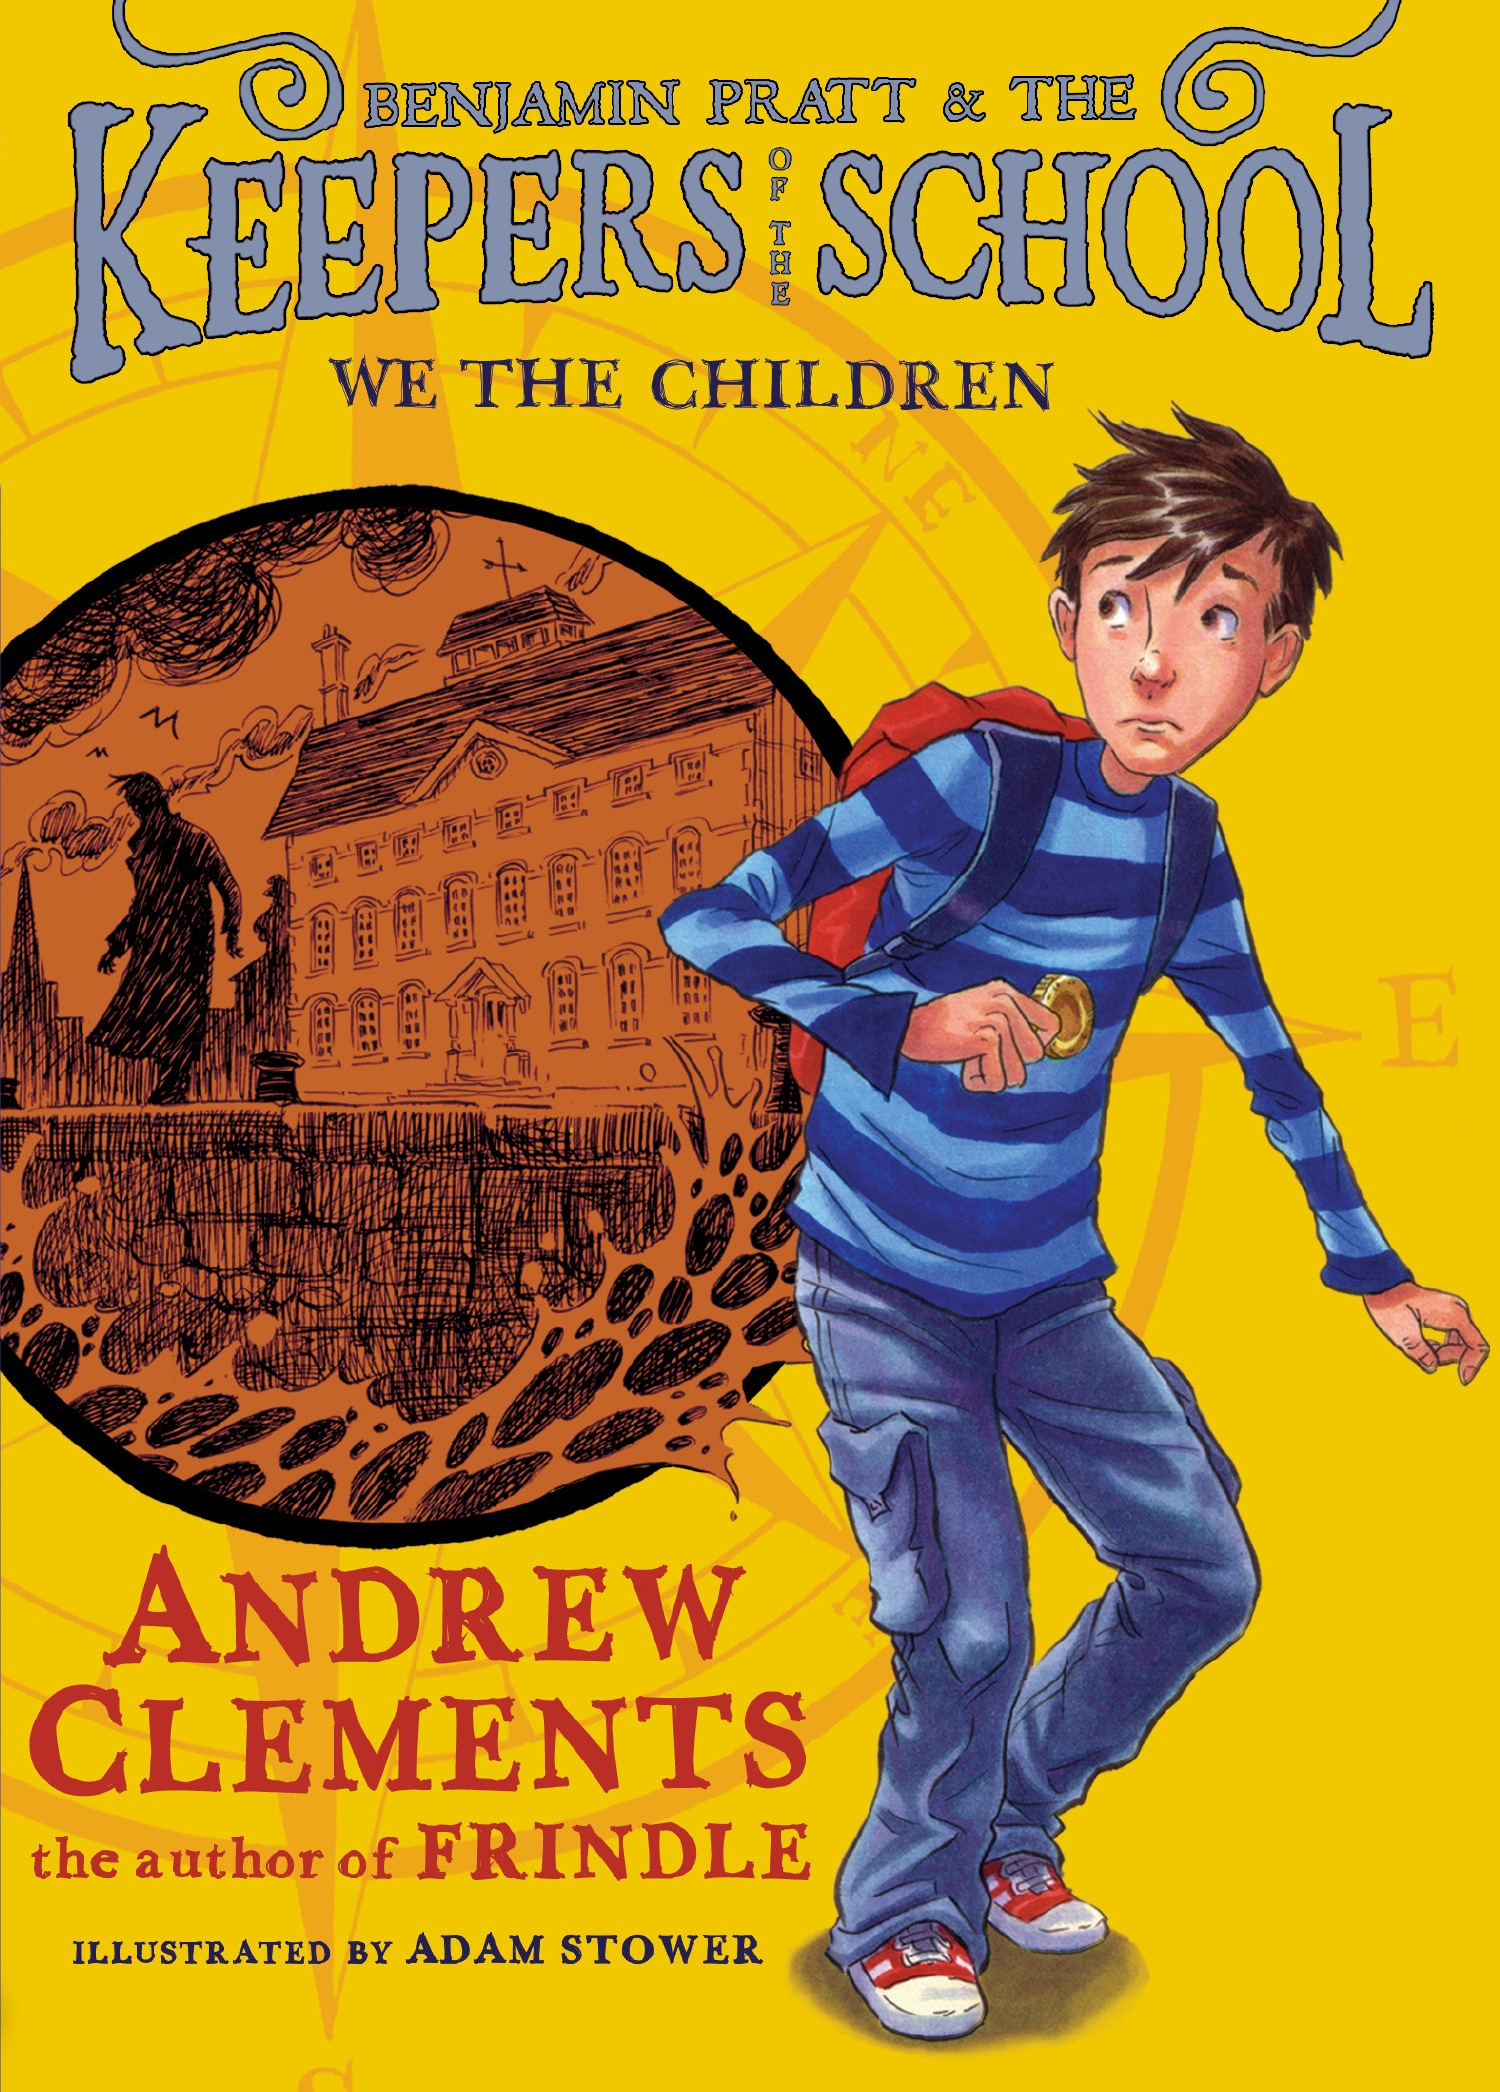 Book Cover Image (jpg): We the Children